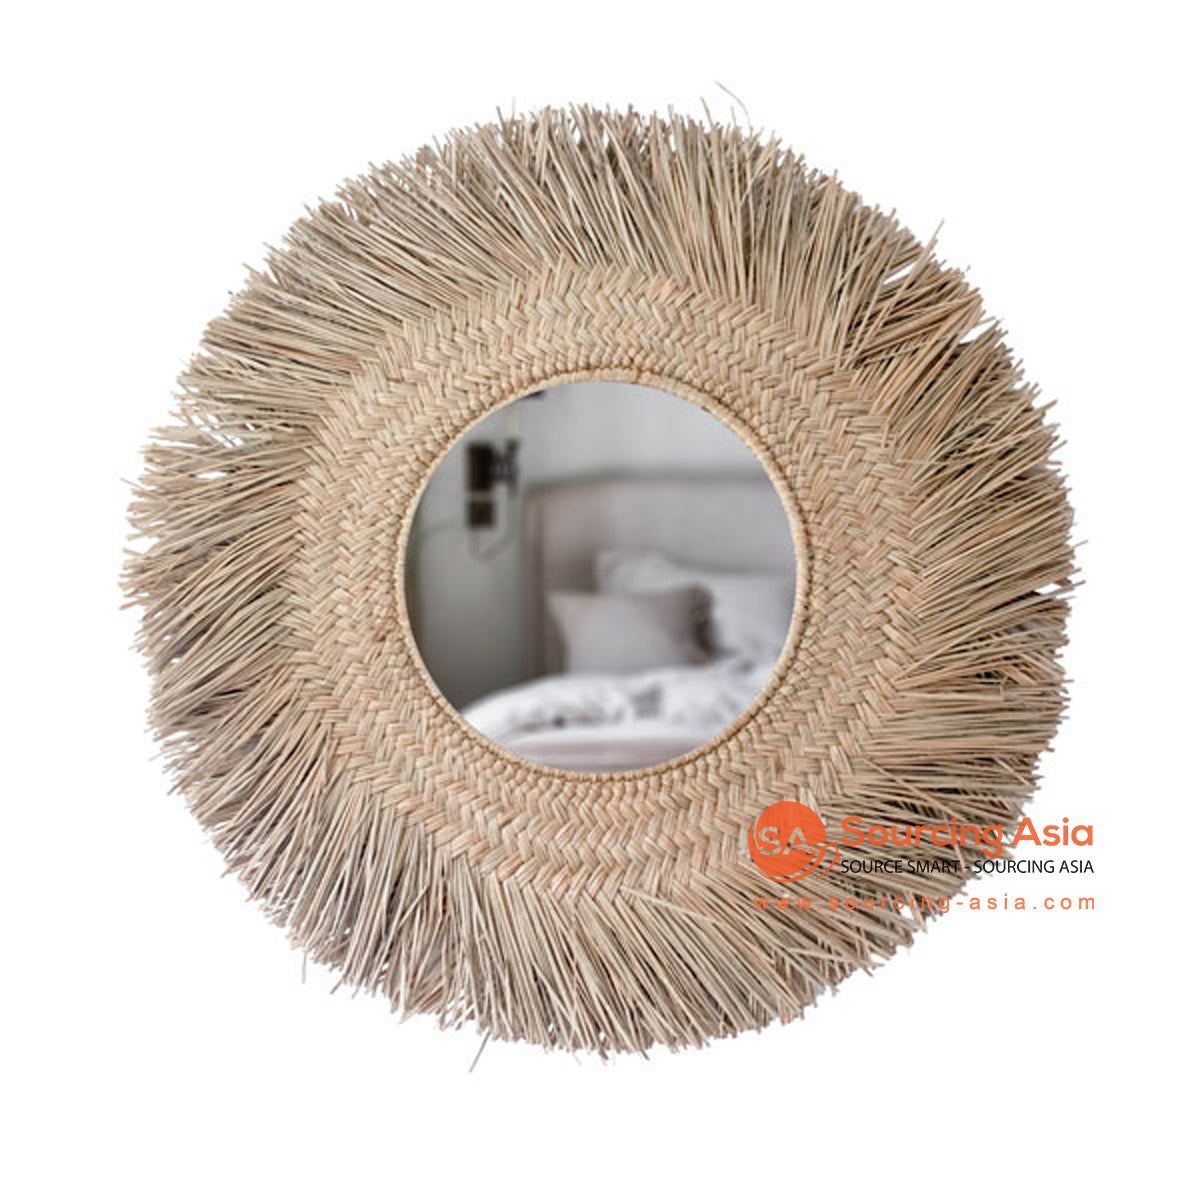 SHL172 NATURAL ROUND MENDONG MIRROR